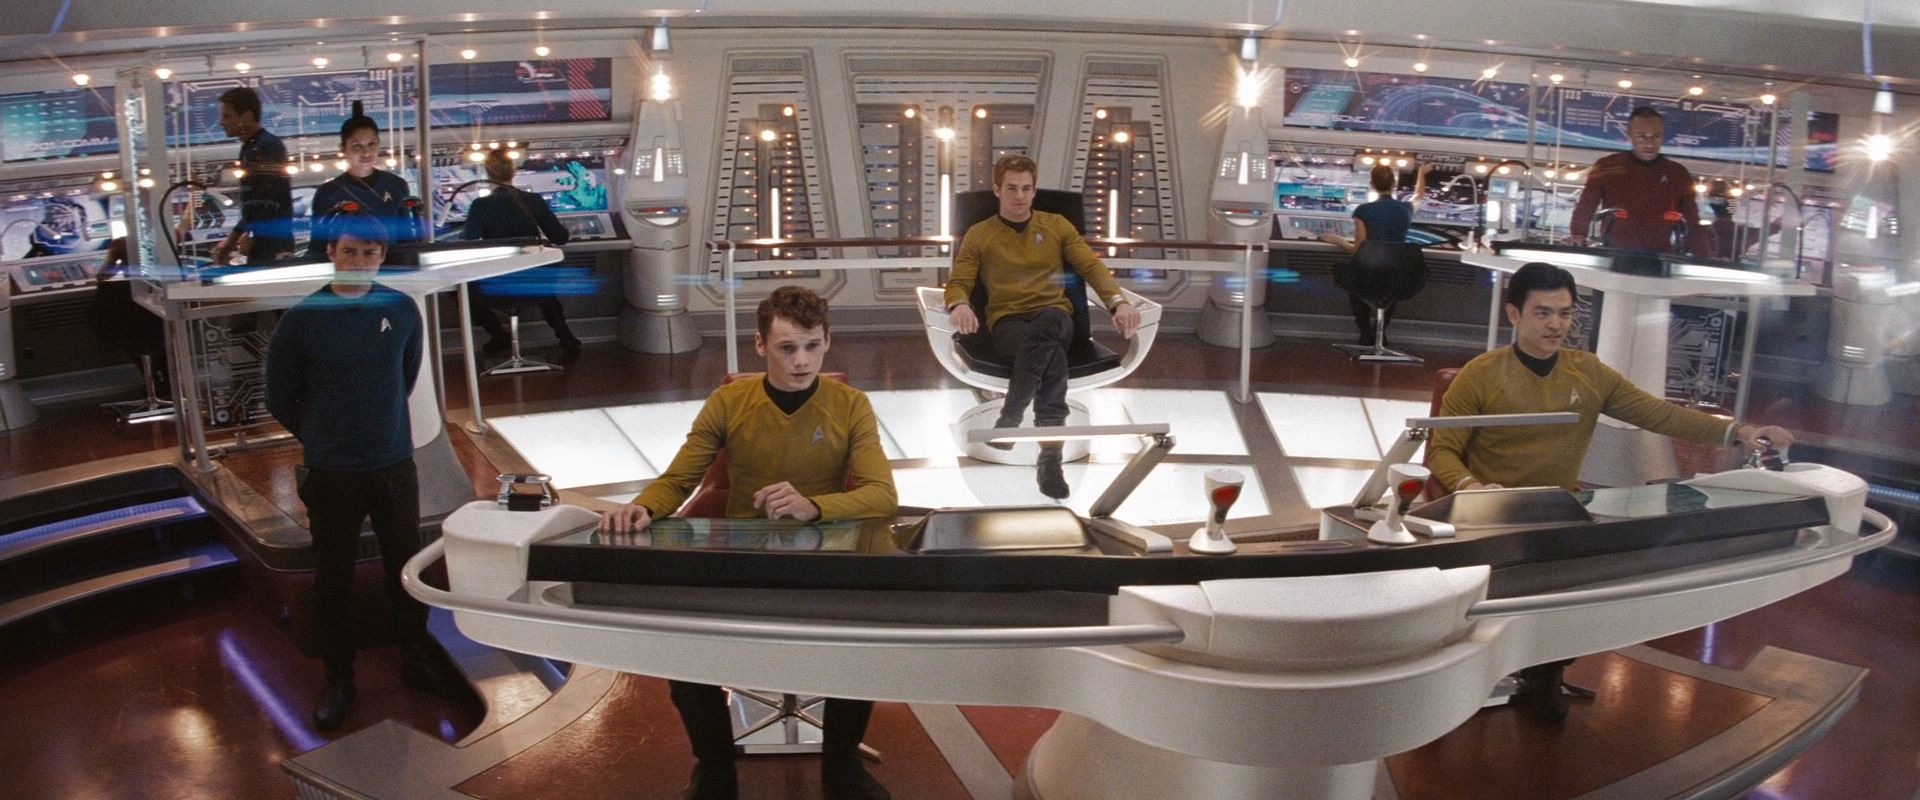 uss_enterprise_alternate_reality_bridge